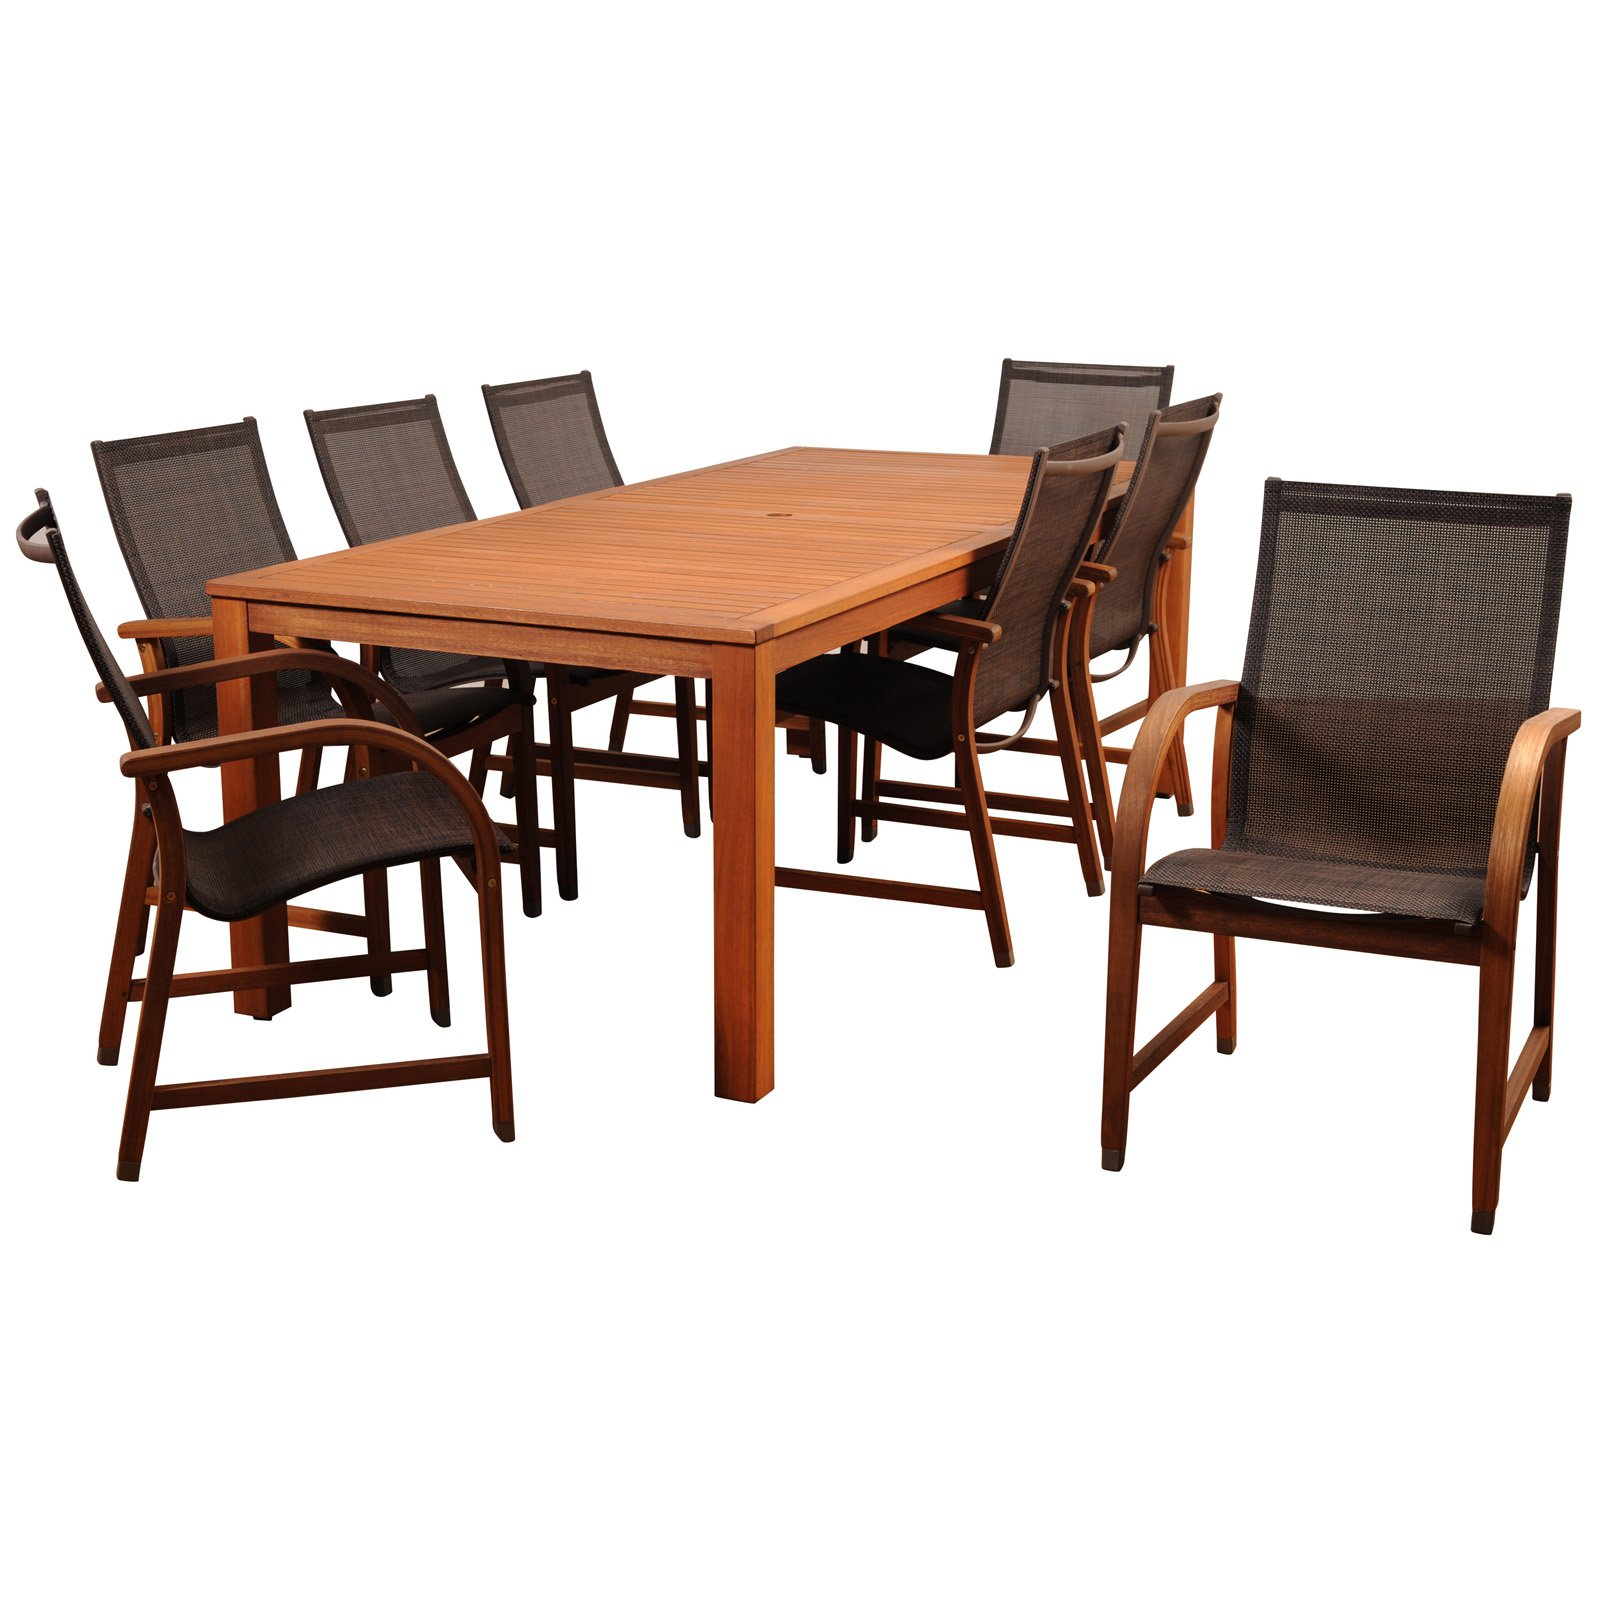 Amazonia Indiana 9 Piece Rectangular Dining Room Set by Overstock